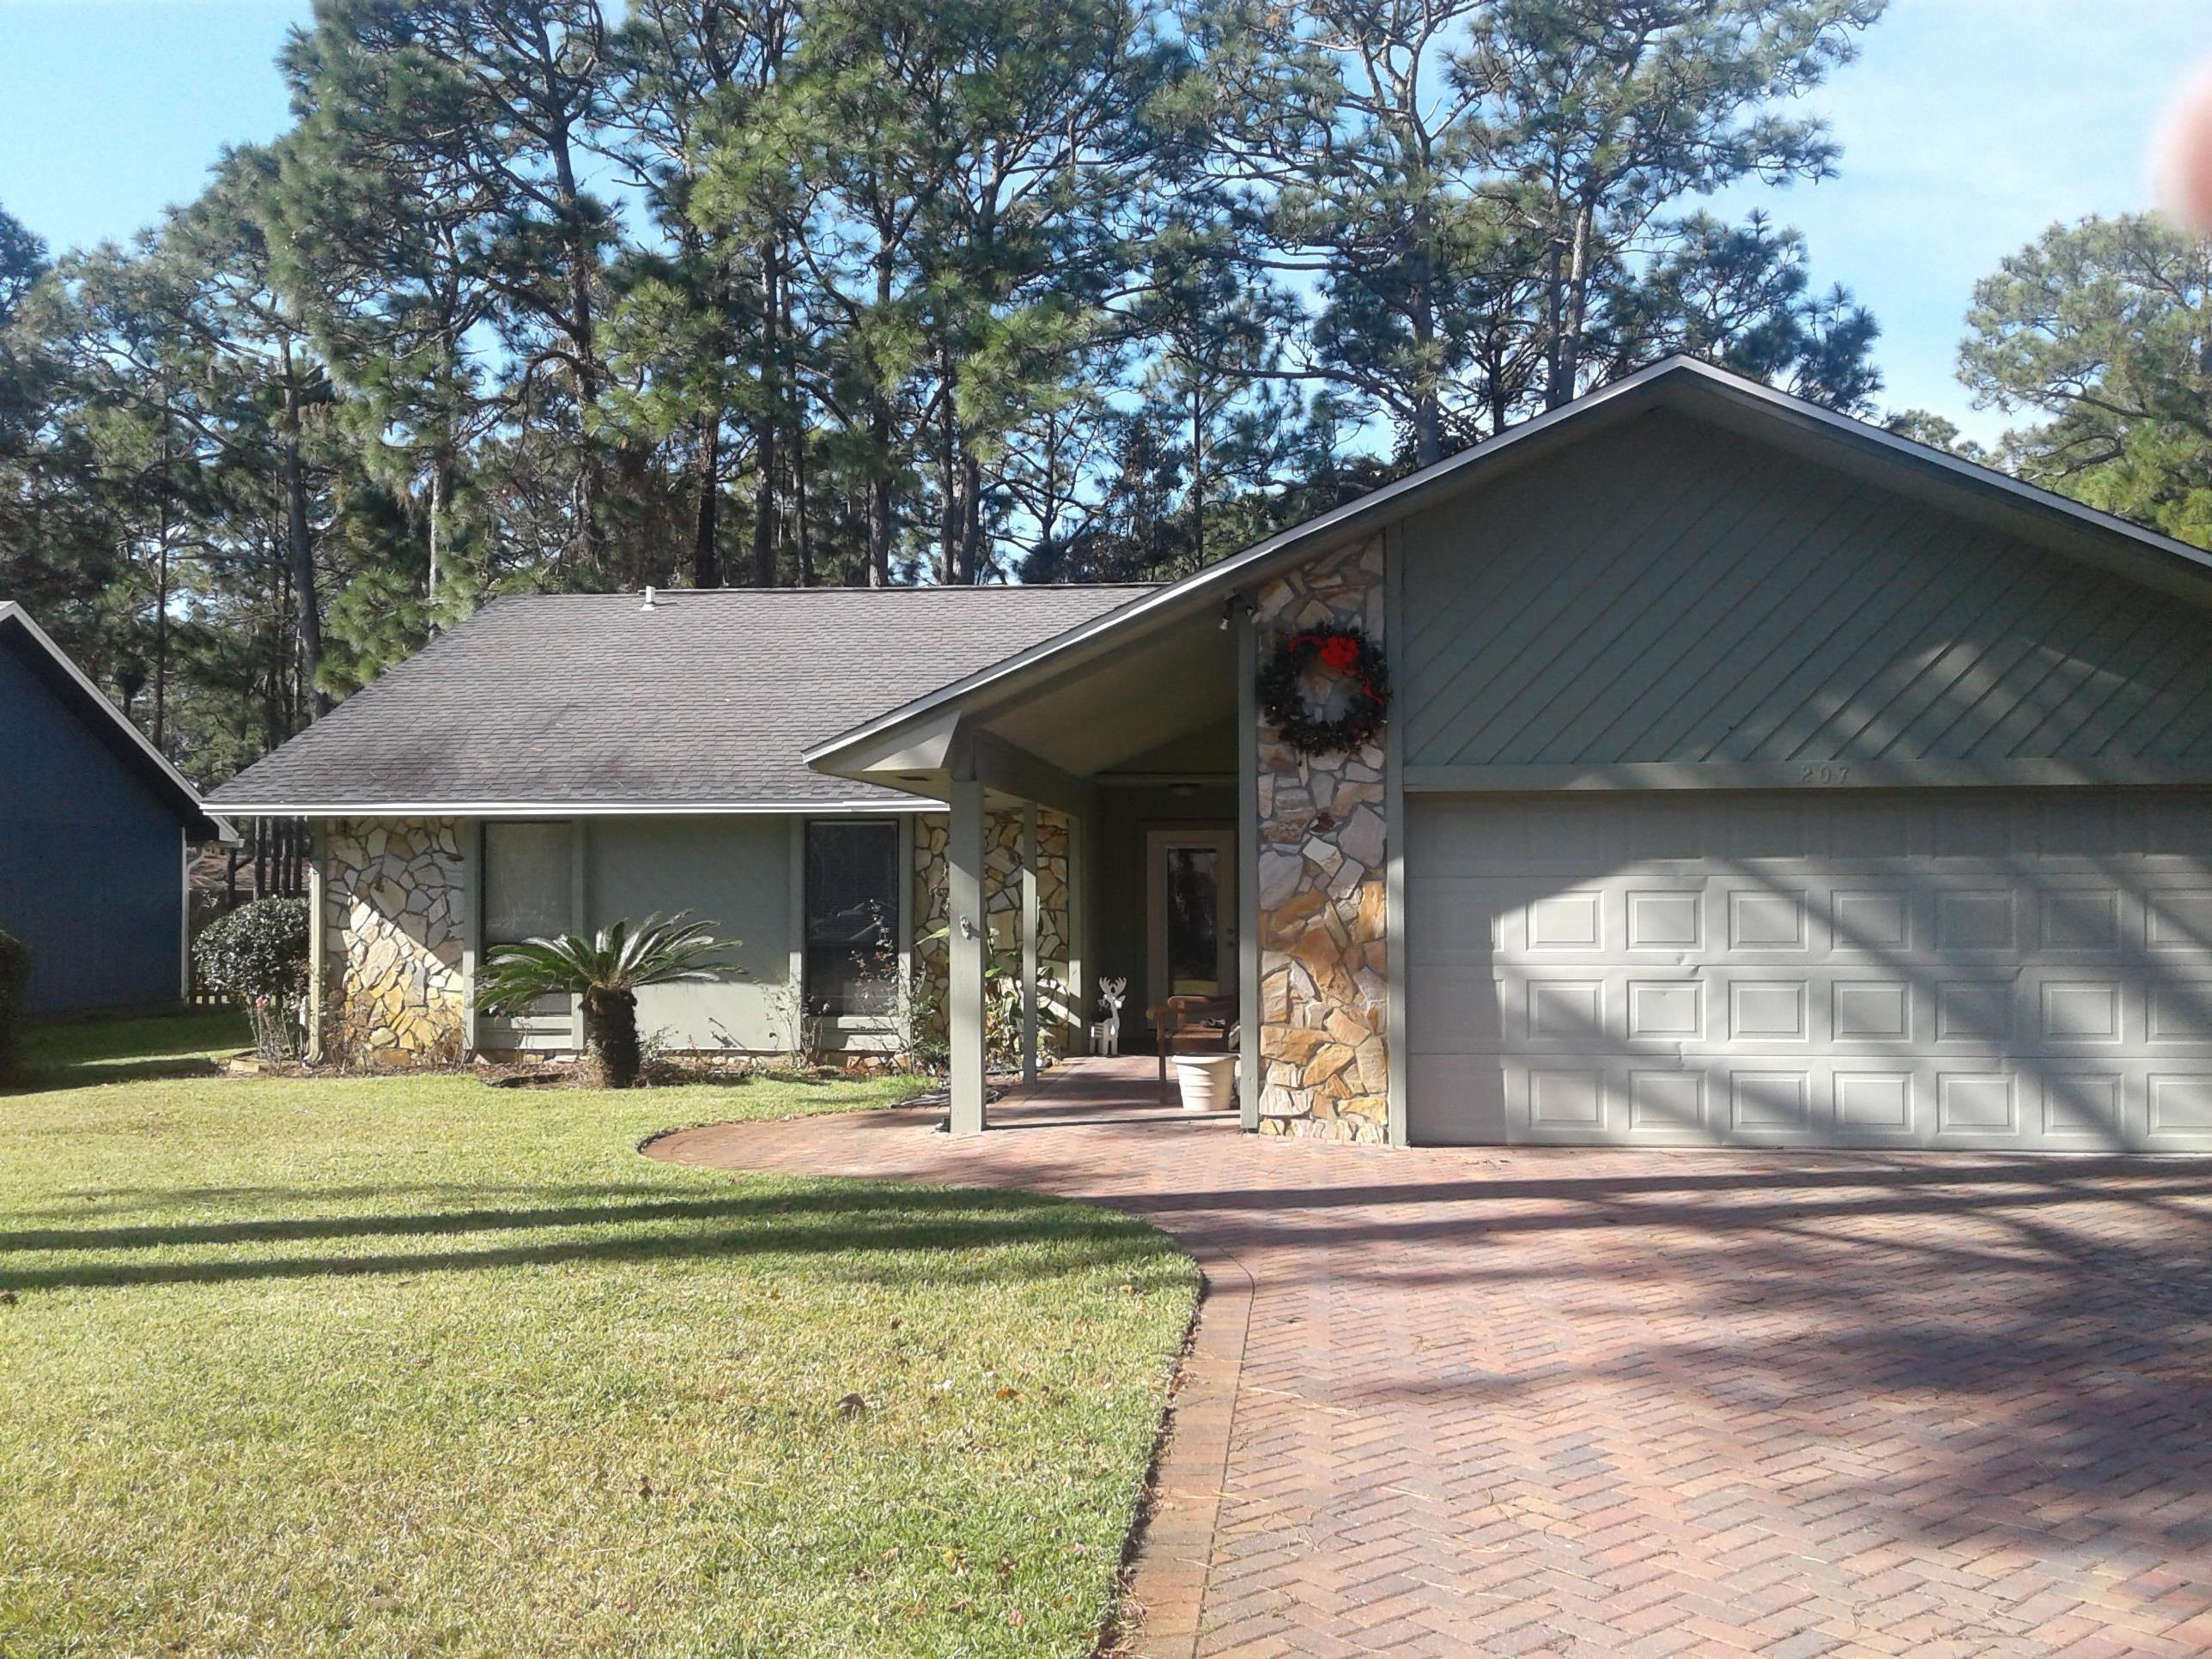 207 W Muirfield Cove, Niceville in Okaloosa County, FL 32578 Home for Sale